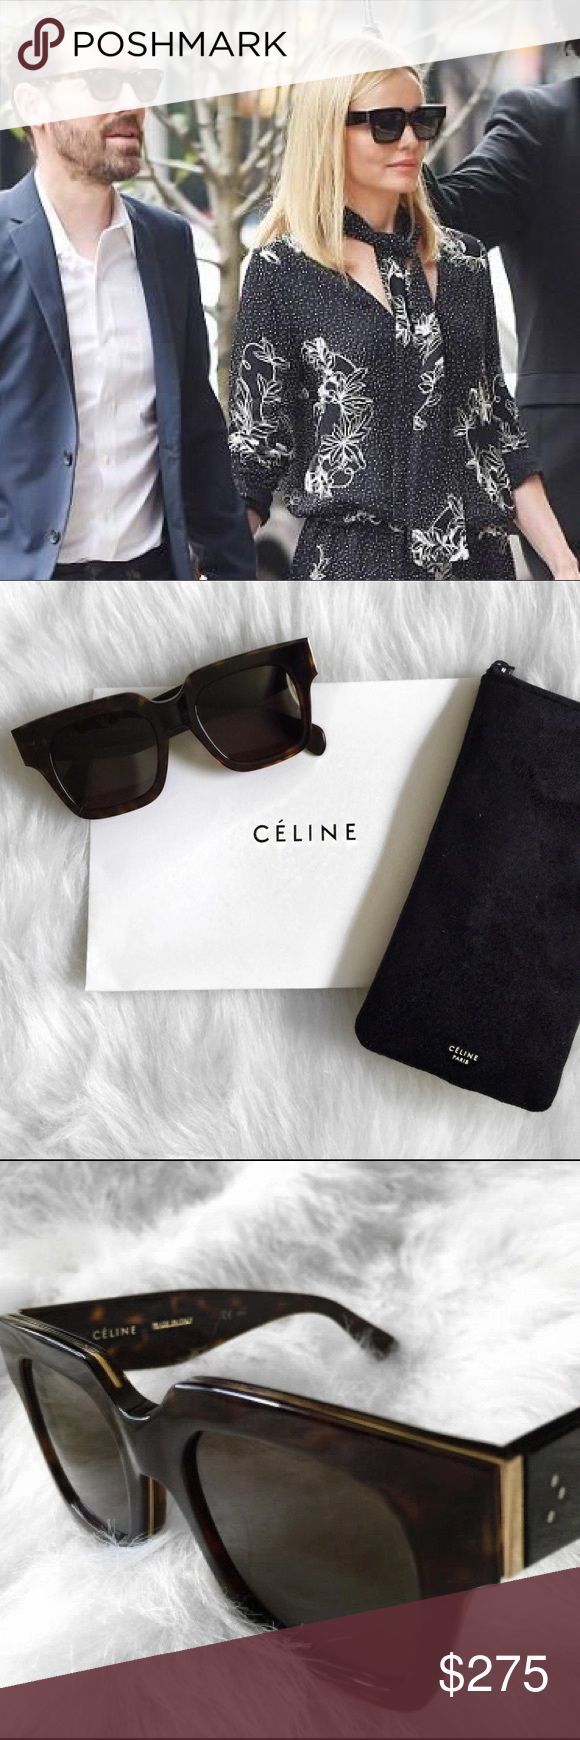 Celine Strat Screen Sunglasses In excellent used condition! As seen on Kate Bosworth! Style number is 41097 in the color Dark Havana. Still love these sunnies, but I want a rounder style. Comes with the original Celine paper packaging, sunglasses pouch, and cleaning cloth. Willing to go lower on Merc! 😊 Celine Accessories Sunglasses